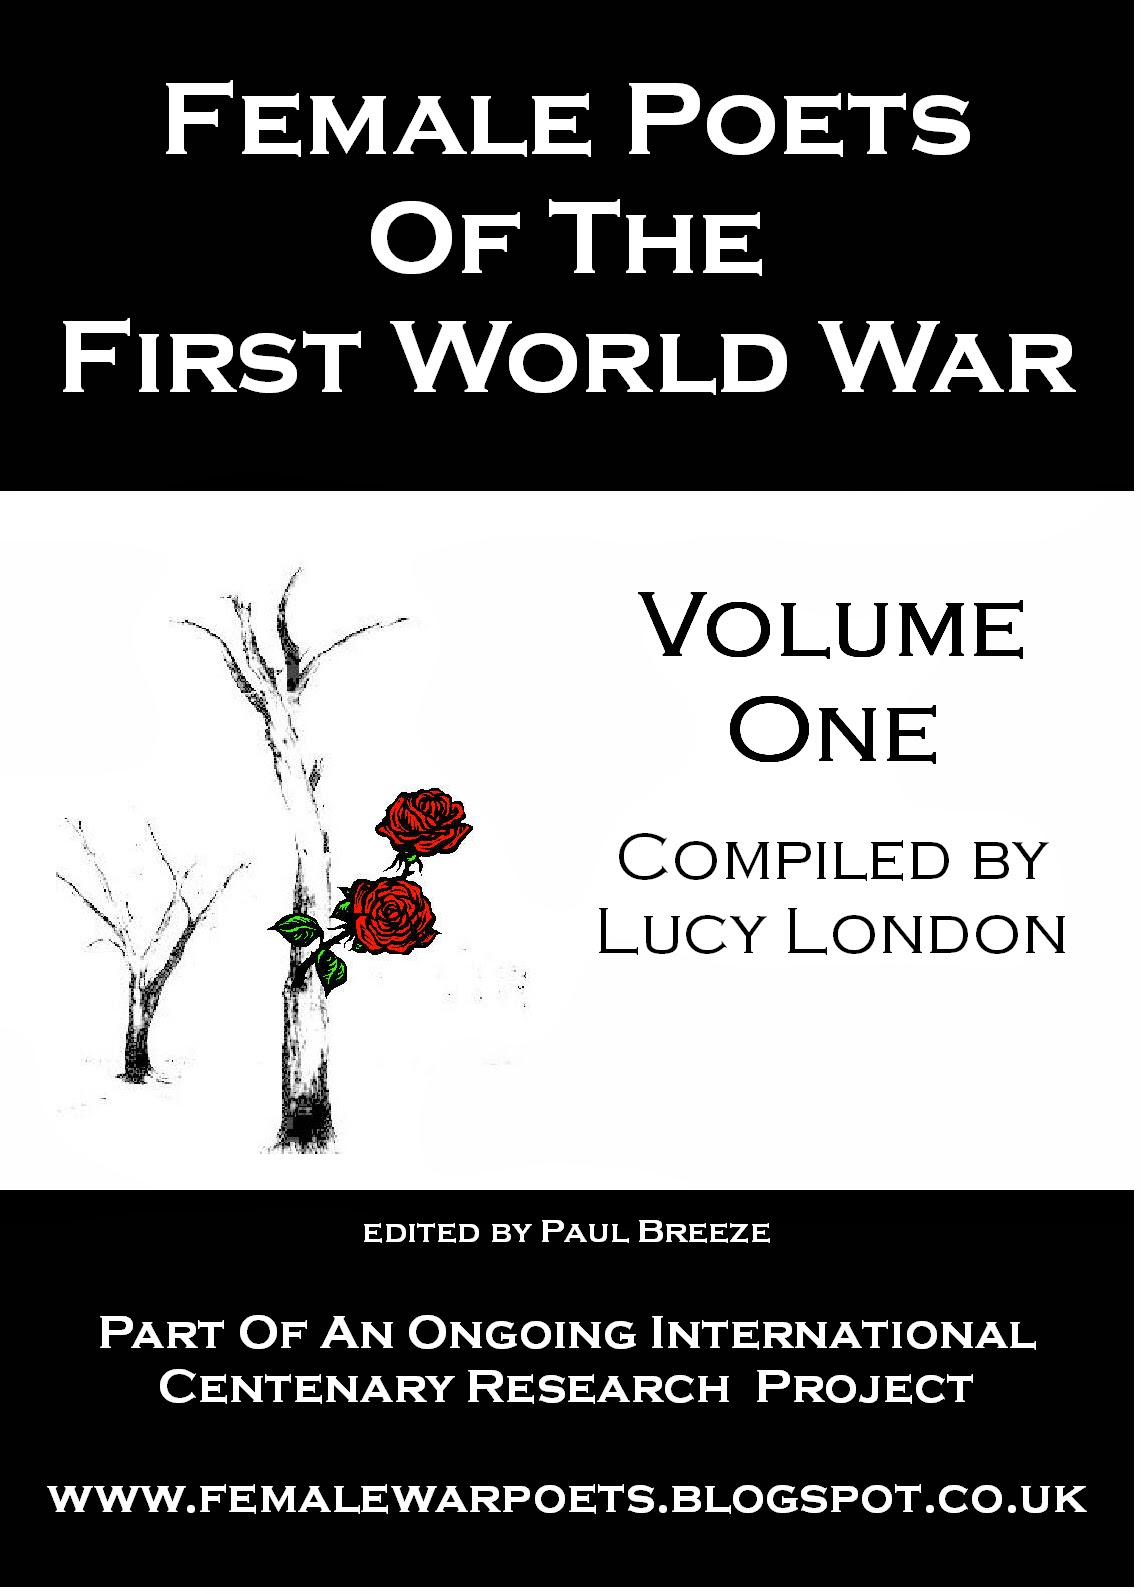 Female Poets of WW1 - PRINT VERSION